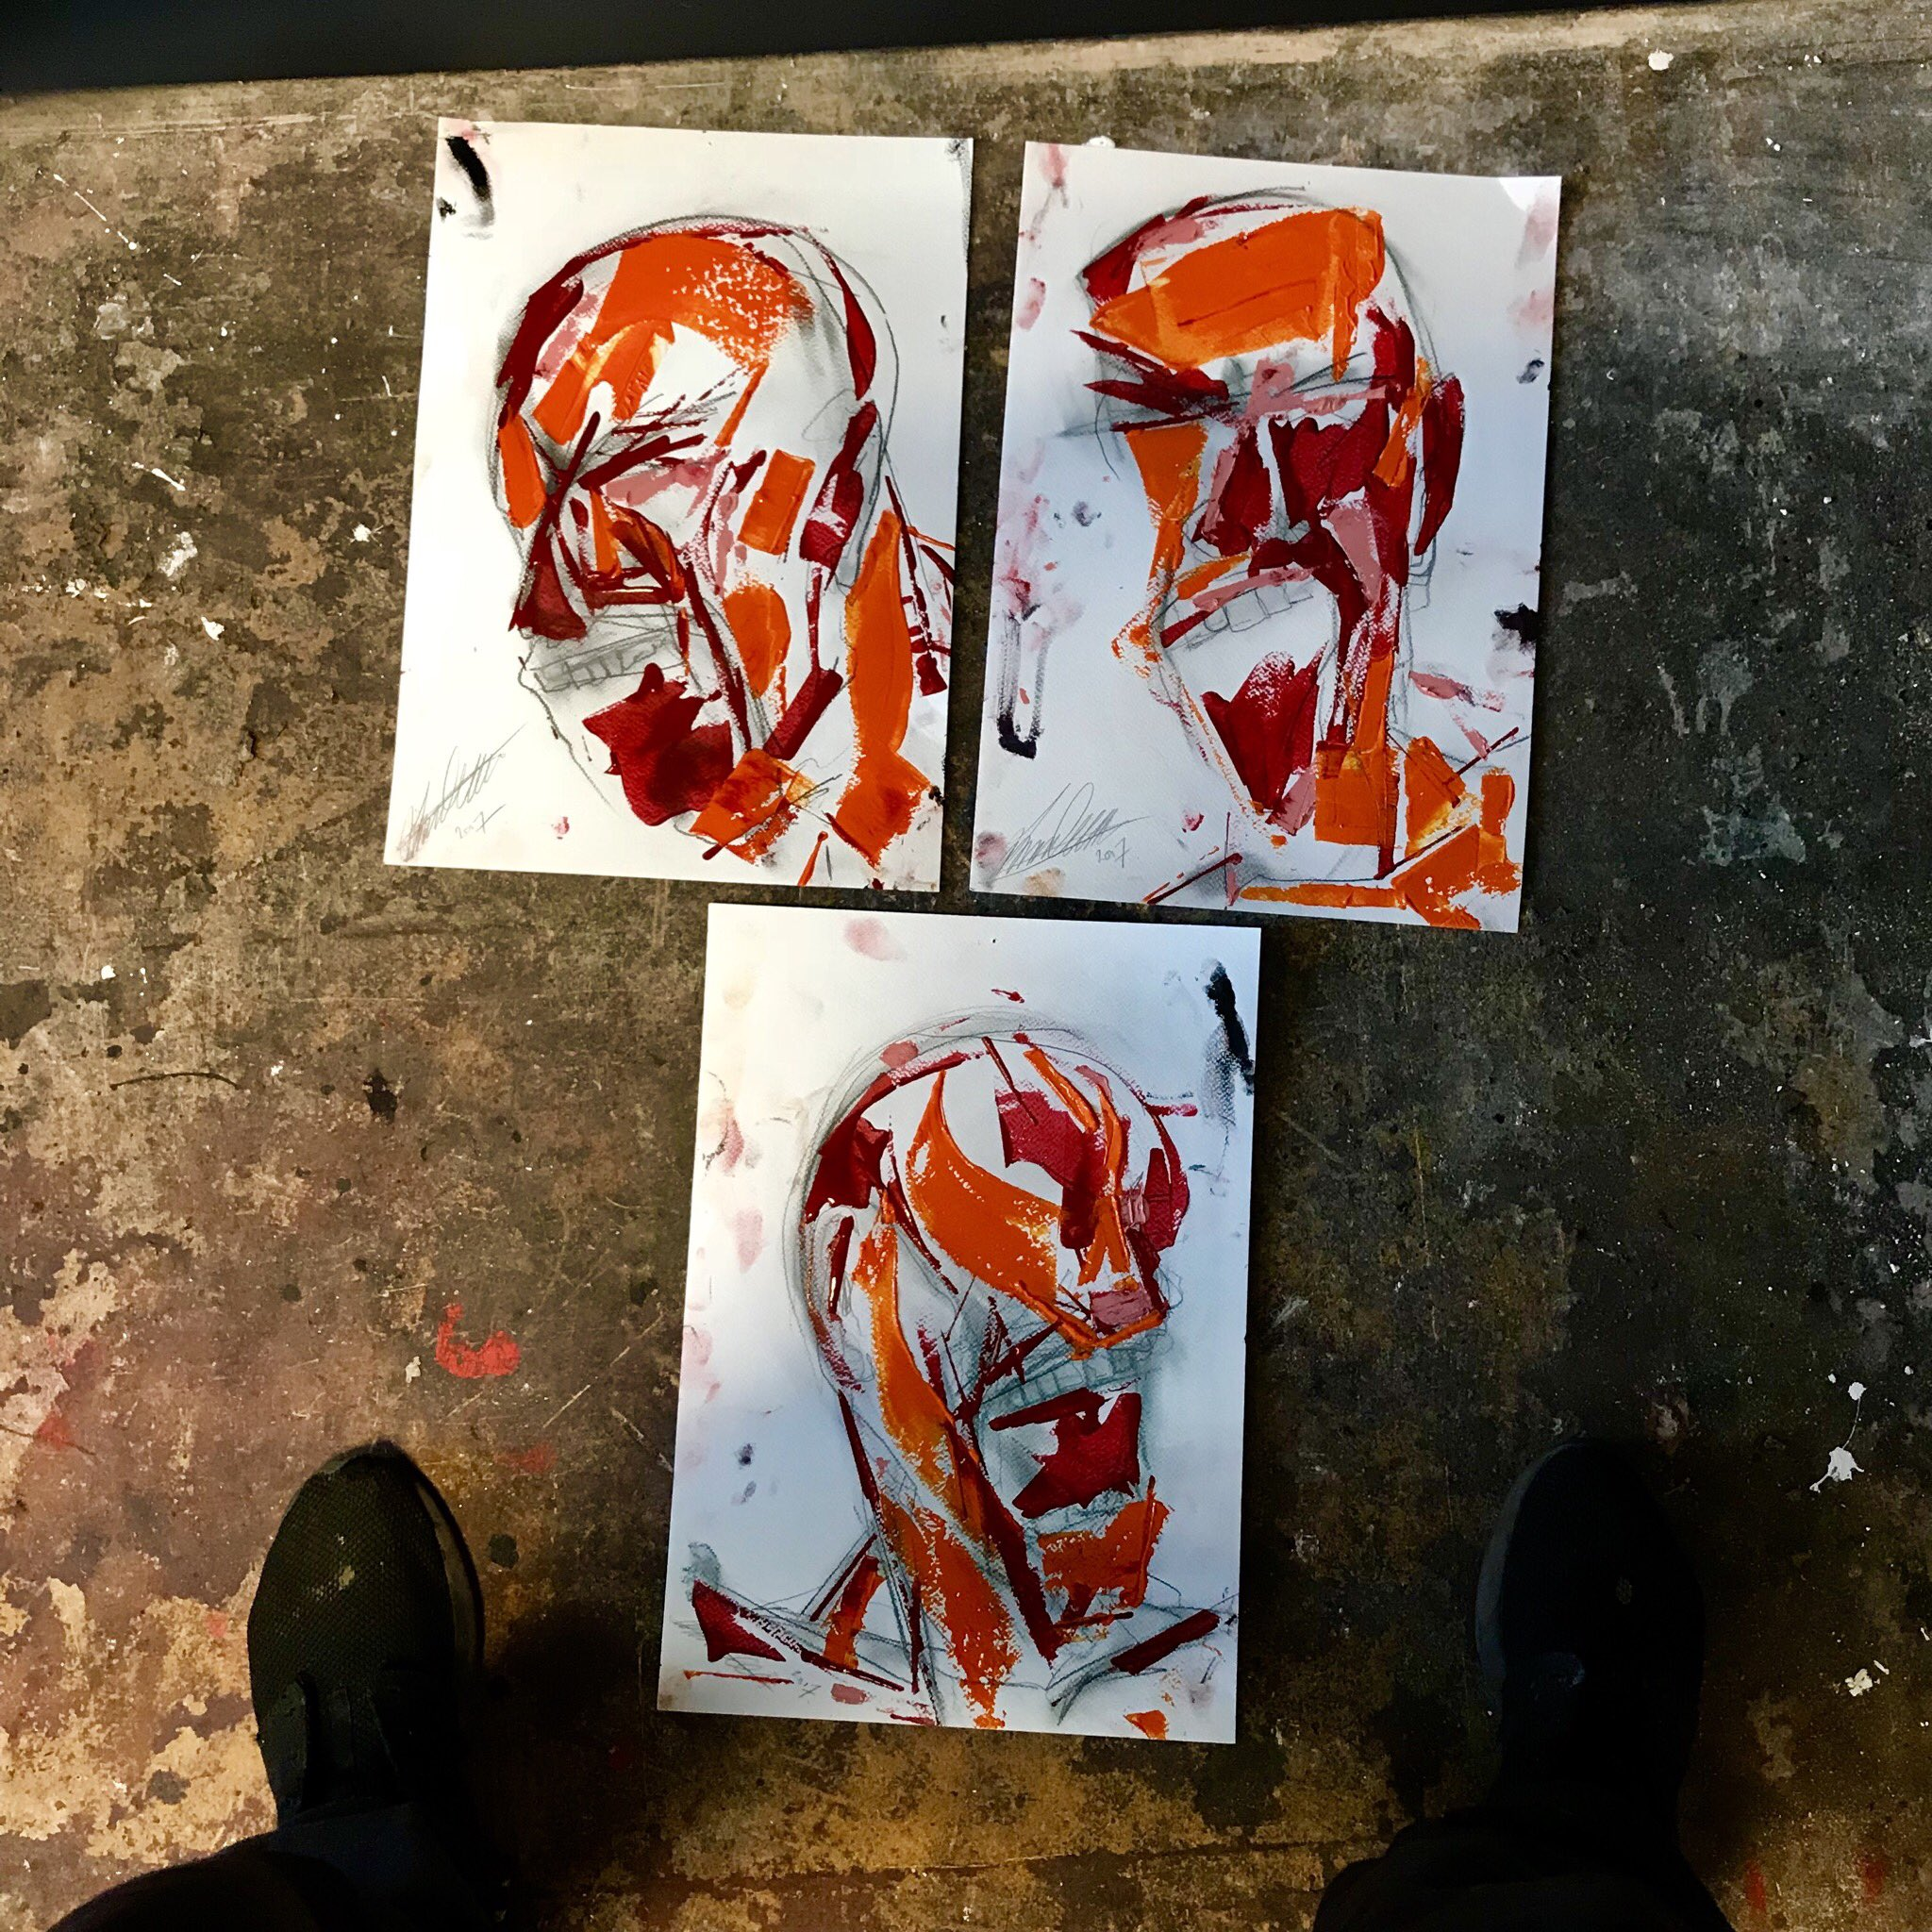 """RT @LincolnTownley: The """"studies"""" will be shown @MaddoxGallery a great entry level piece for collectors 👹 https://t.co/tutsEvts6V"""